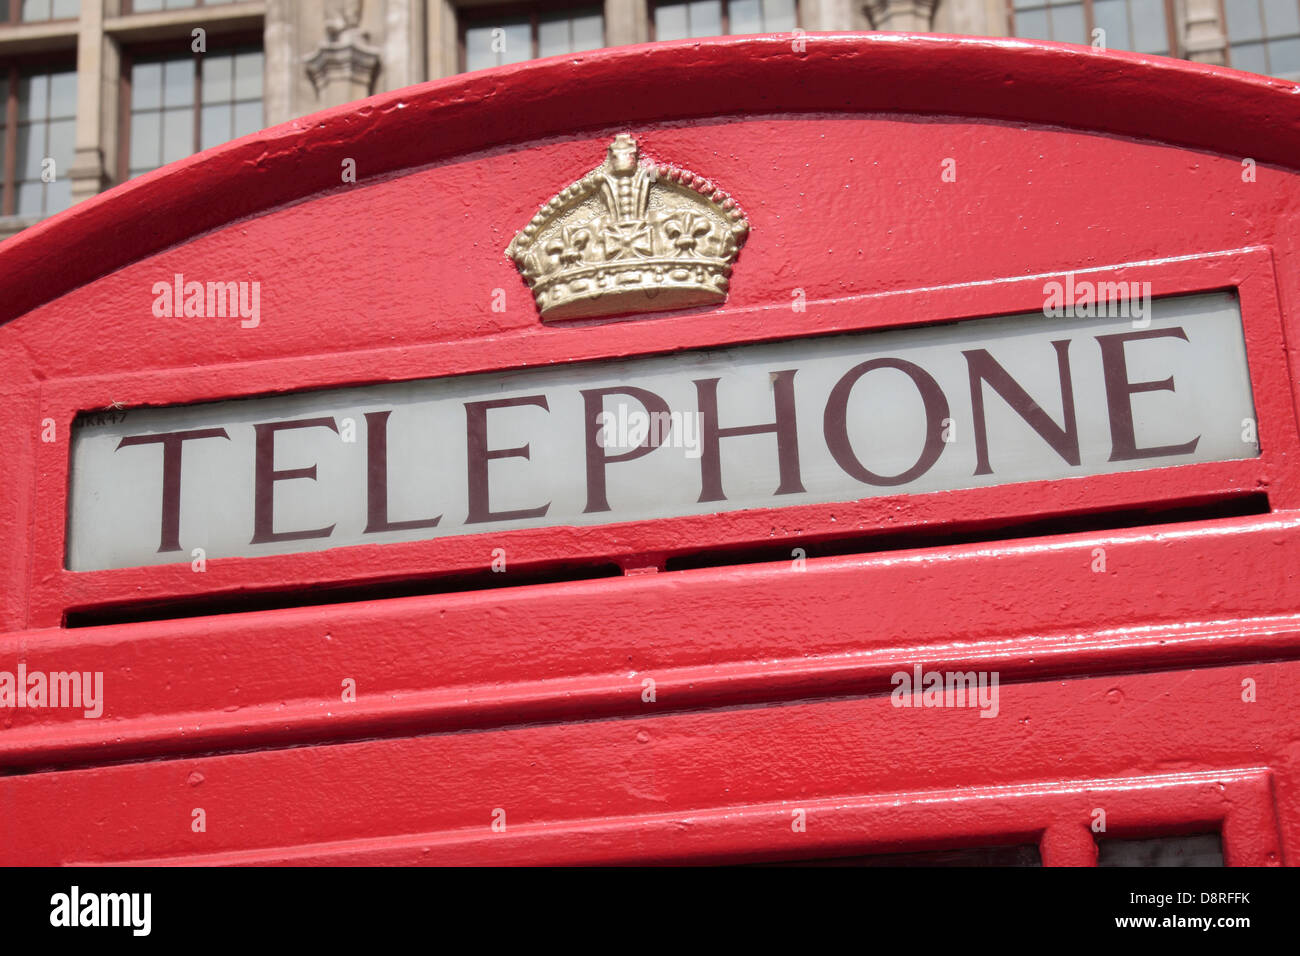 The top section showing he Royal Crown on the iconic red telephone box in London, UK. - Stock Image